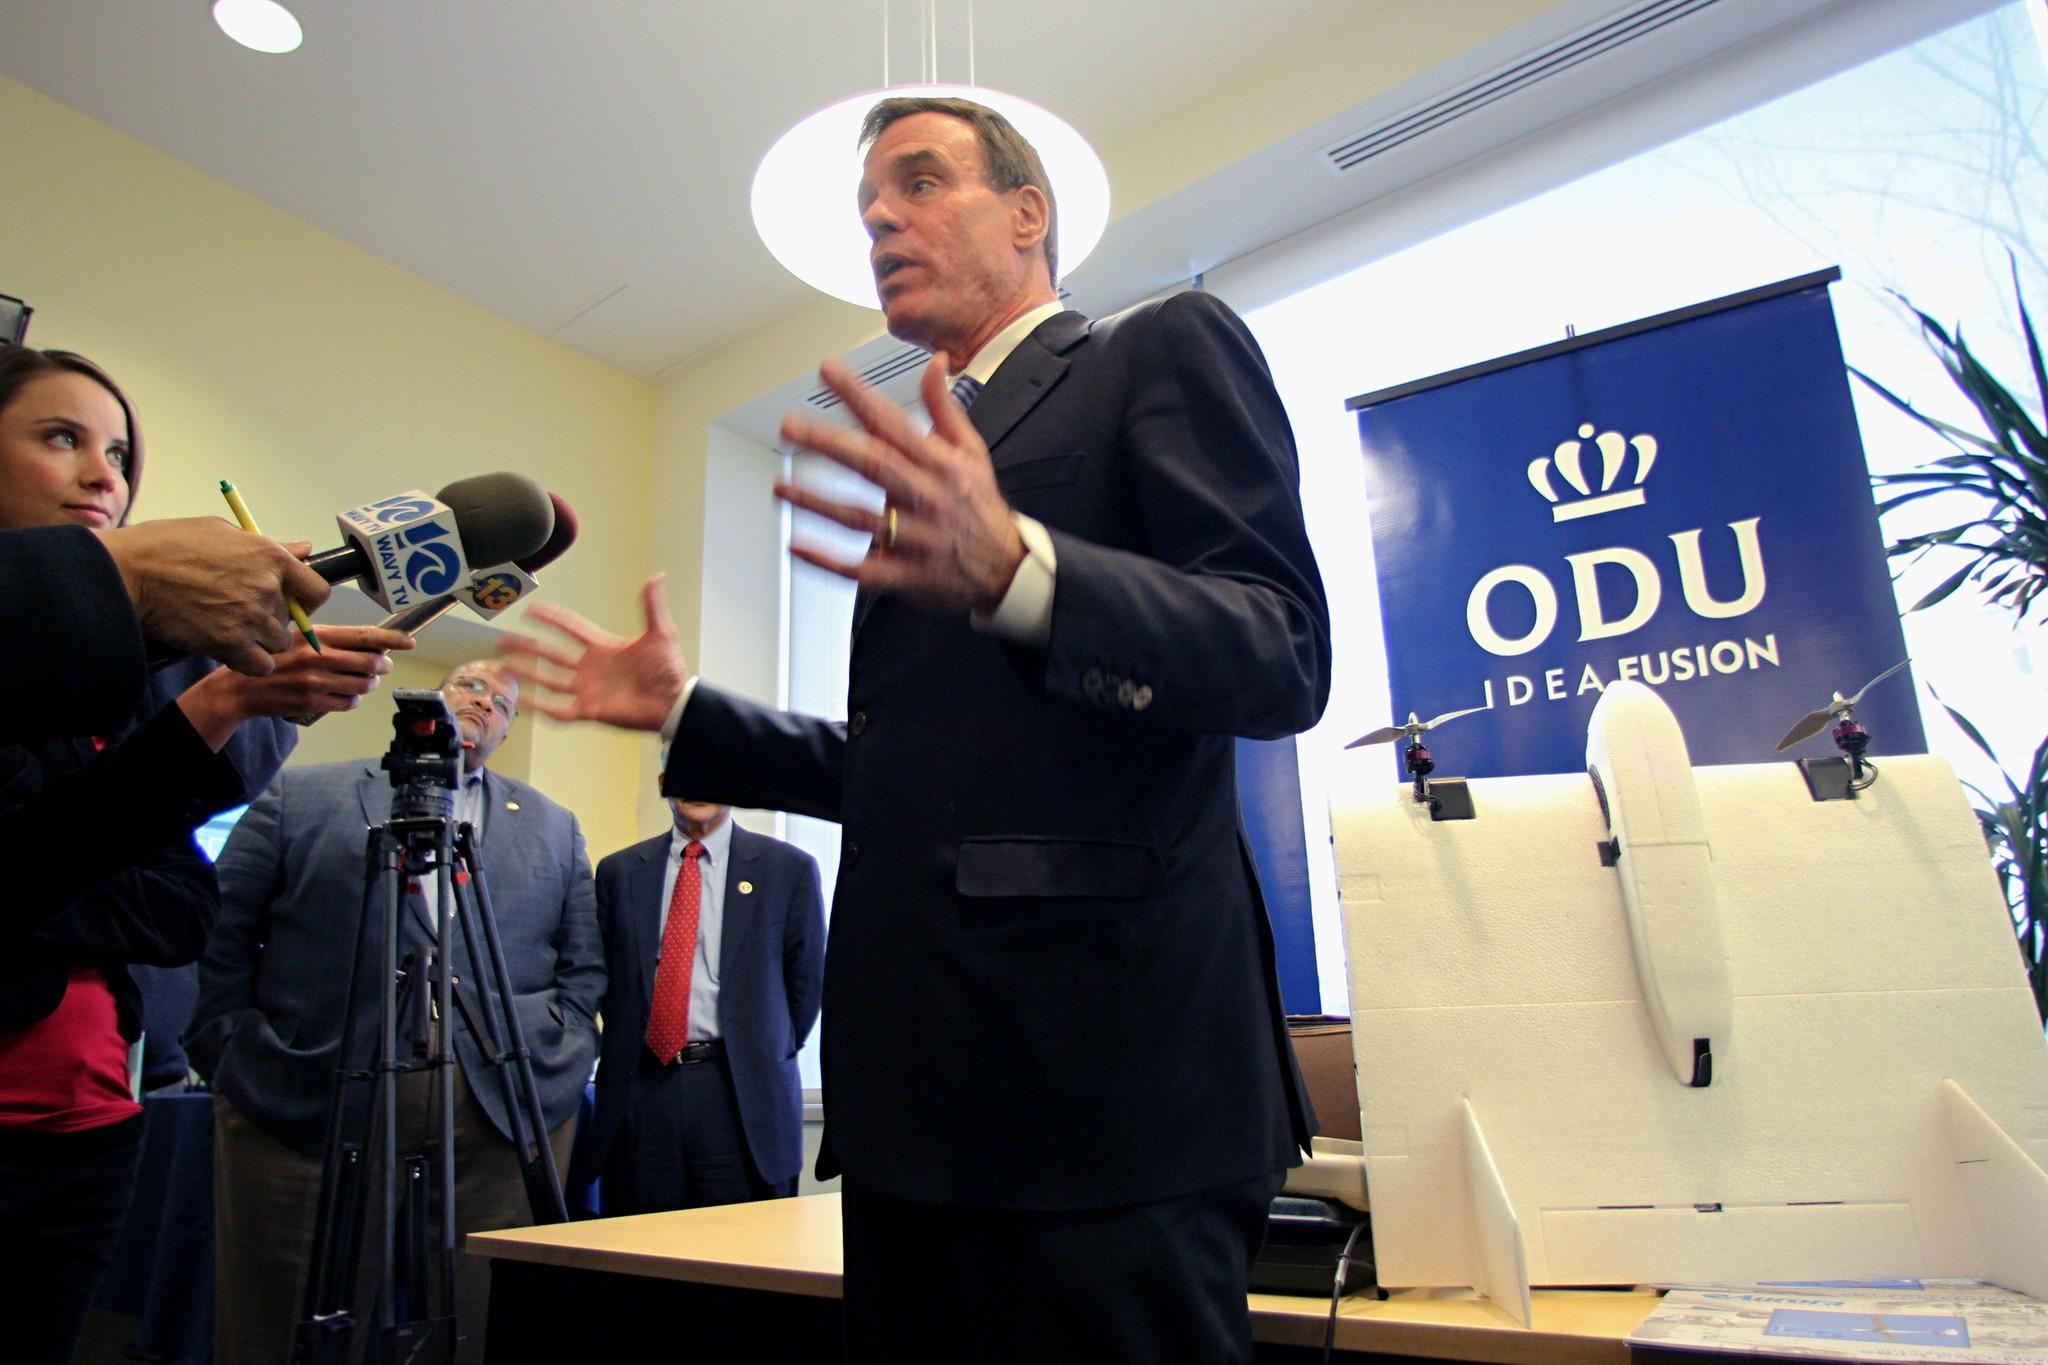 Sen. Mark Warner talks with the press before a meeting to discuss the use of drones in civilian air space on Friday at Old Dominion University.